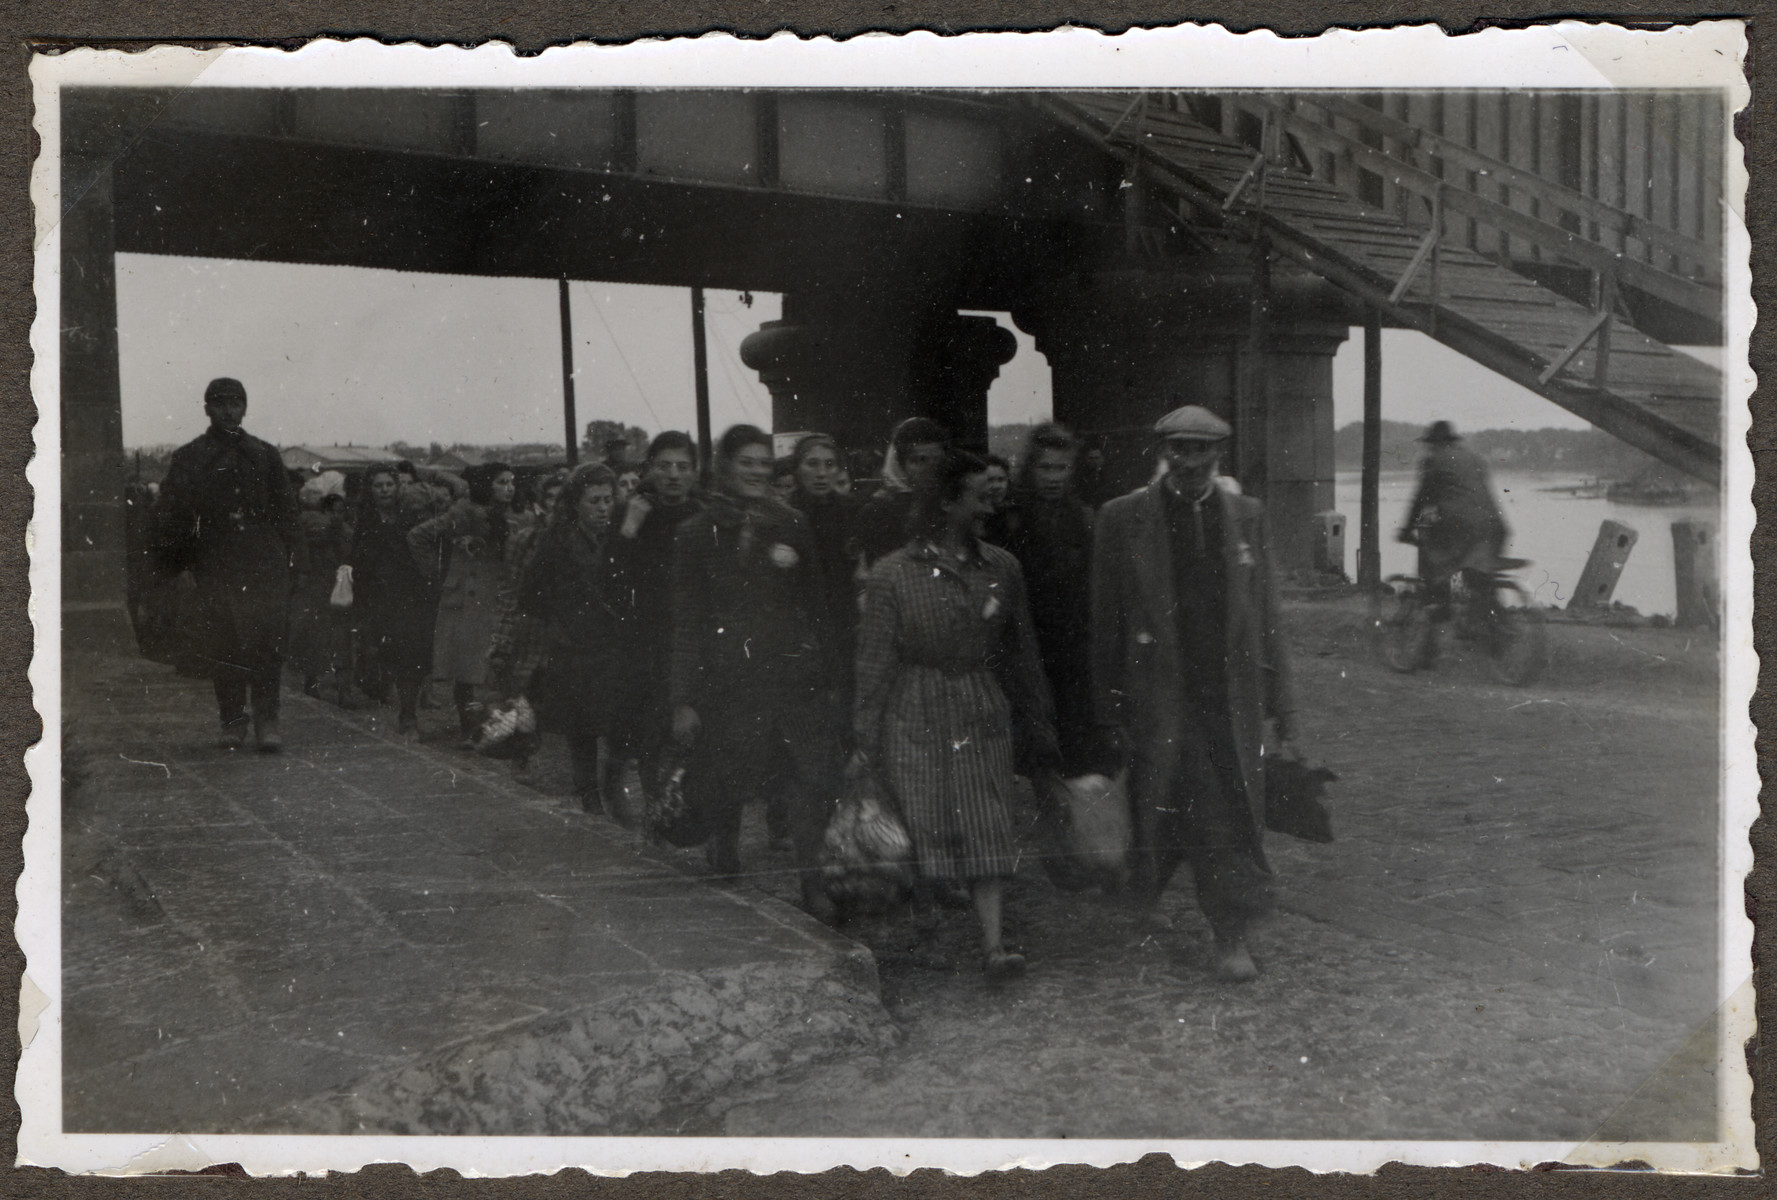 Jews wearing stars of David march under guard to the  new ghetto located across the river in Slobodka.